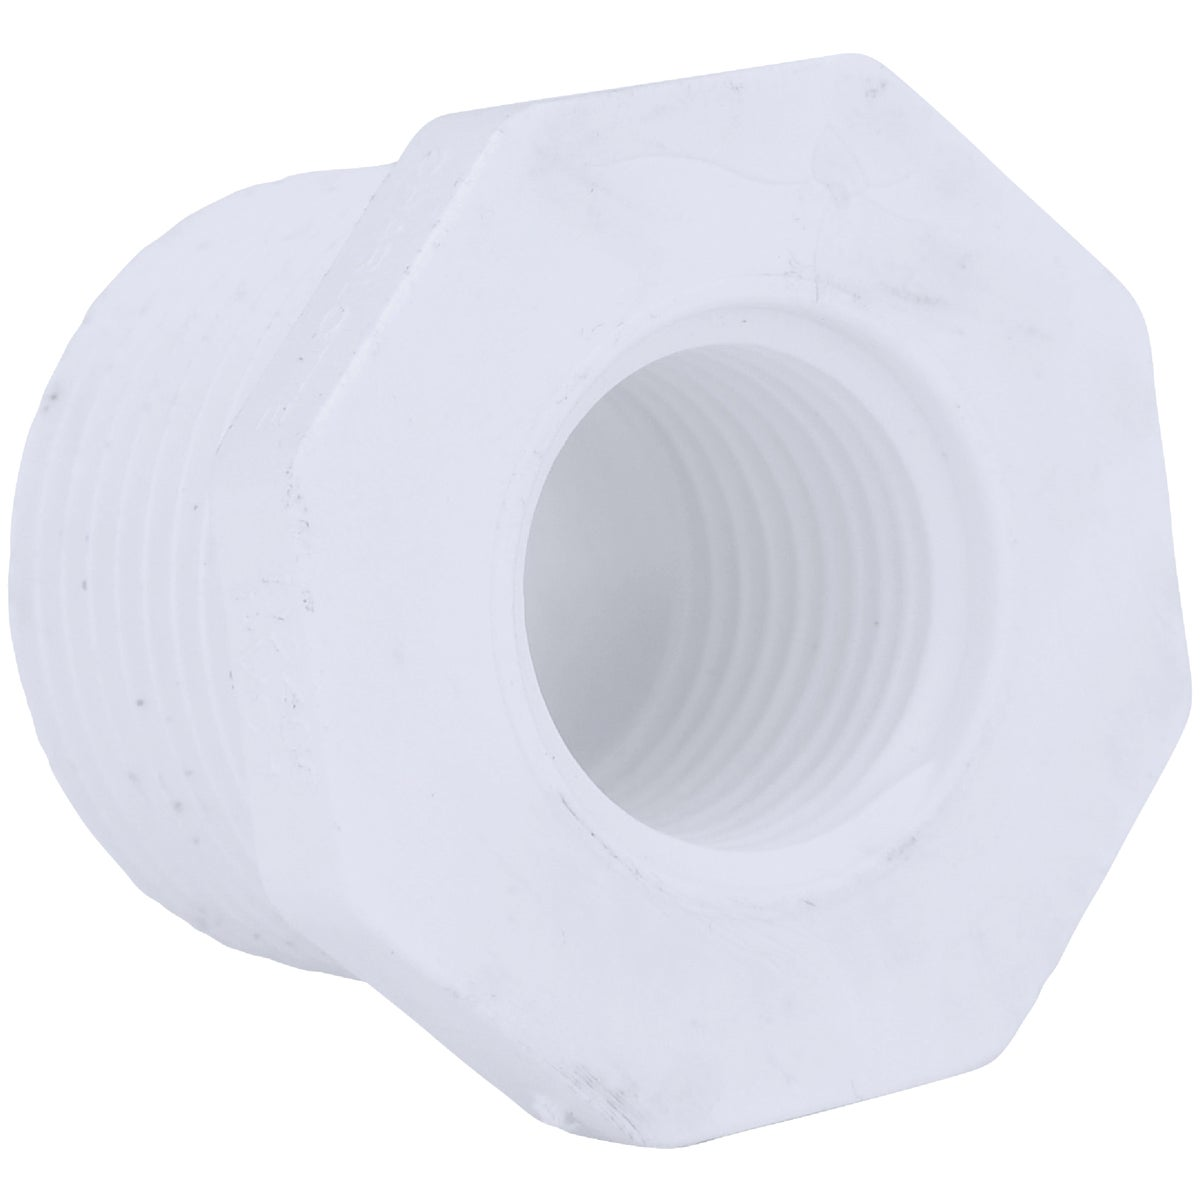 1X1/2 MIPXFIP BUSHING - 34315 by Genova Inc